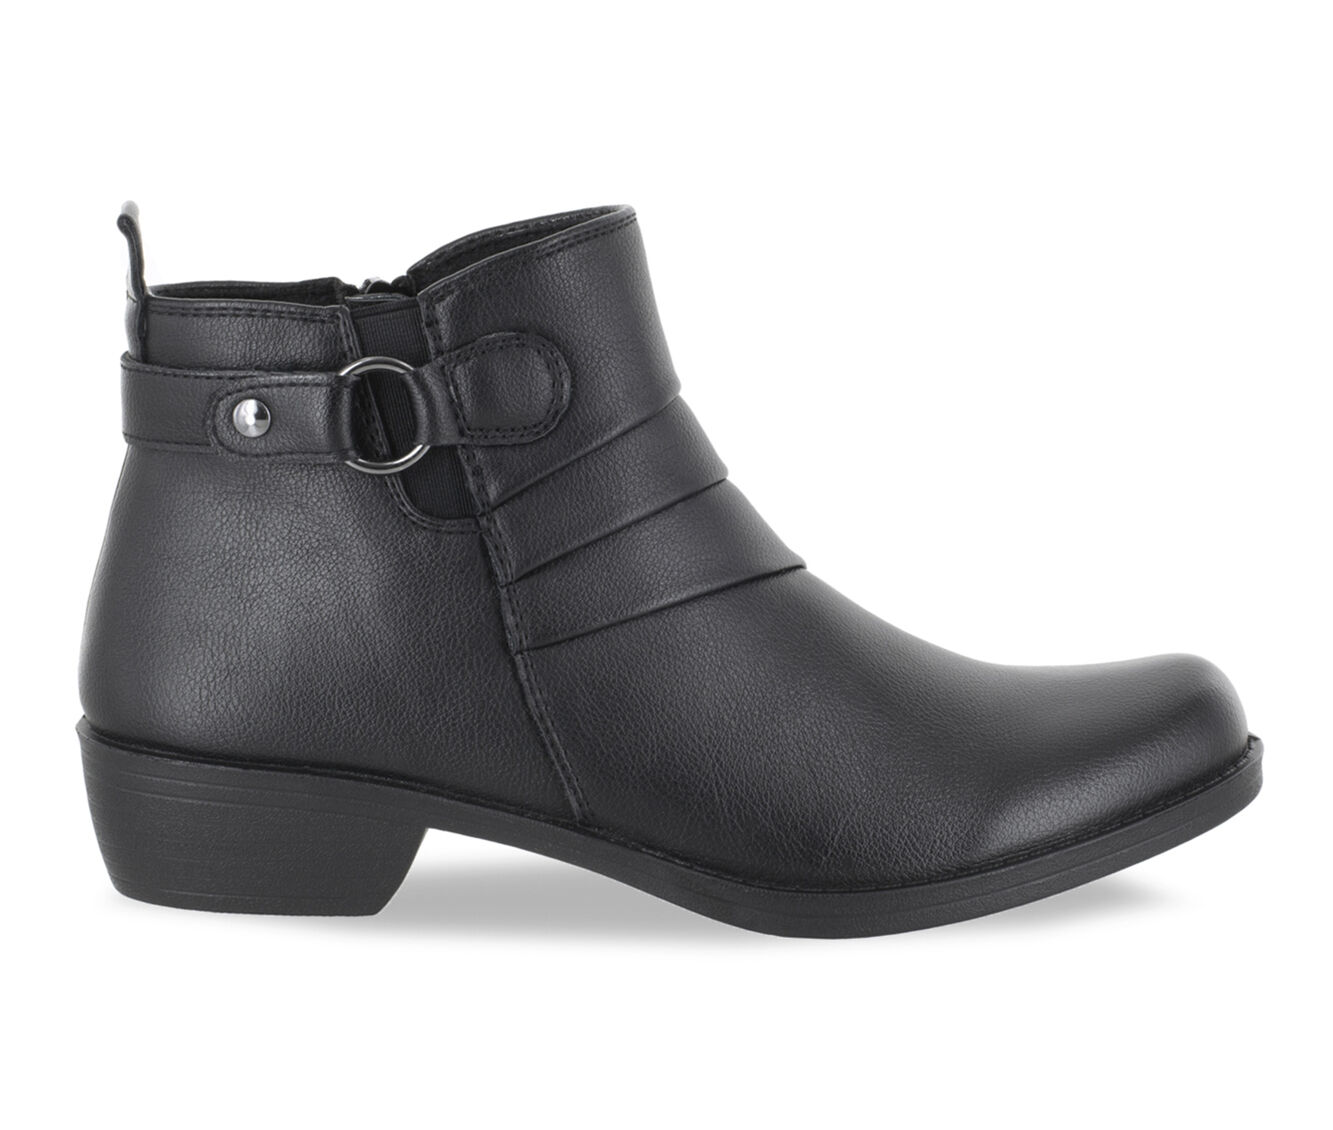 Good Quality Women's Easy Street Shanna Booties Black Smooth